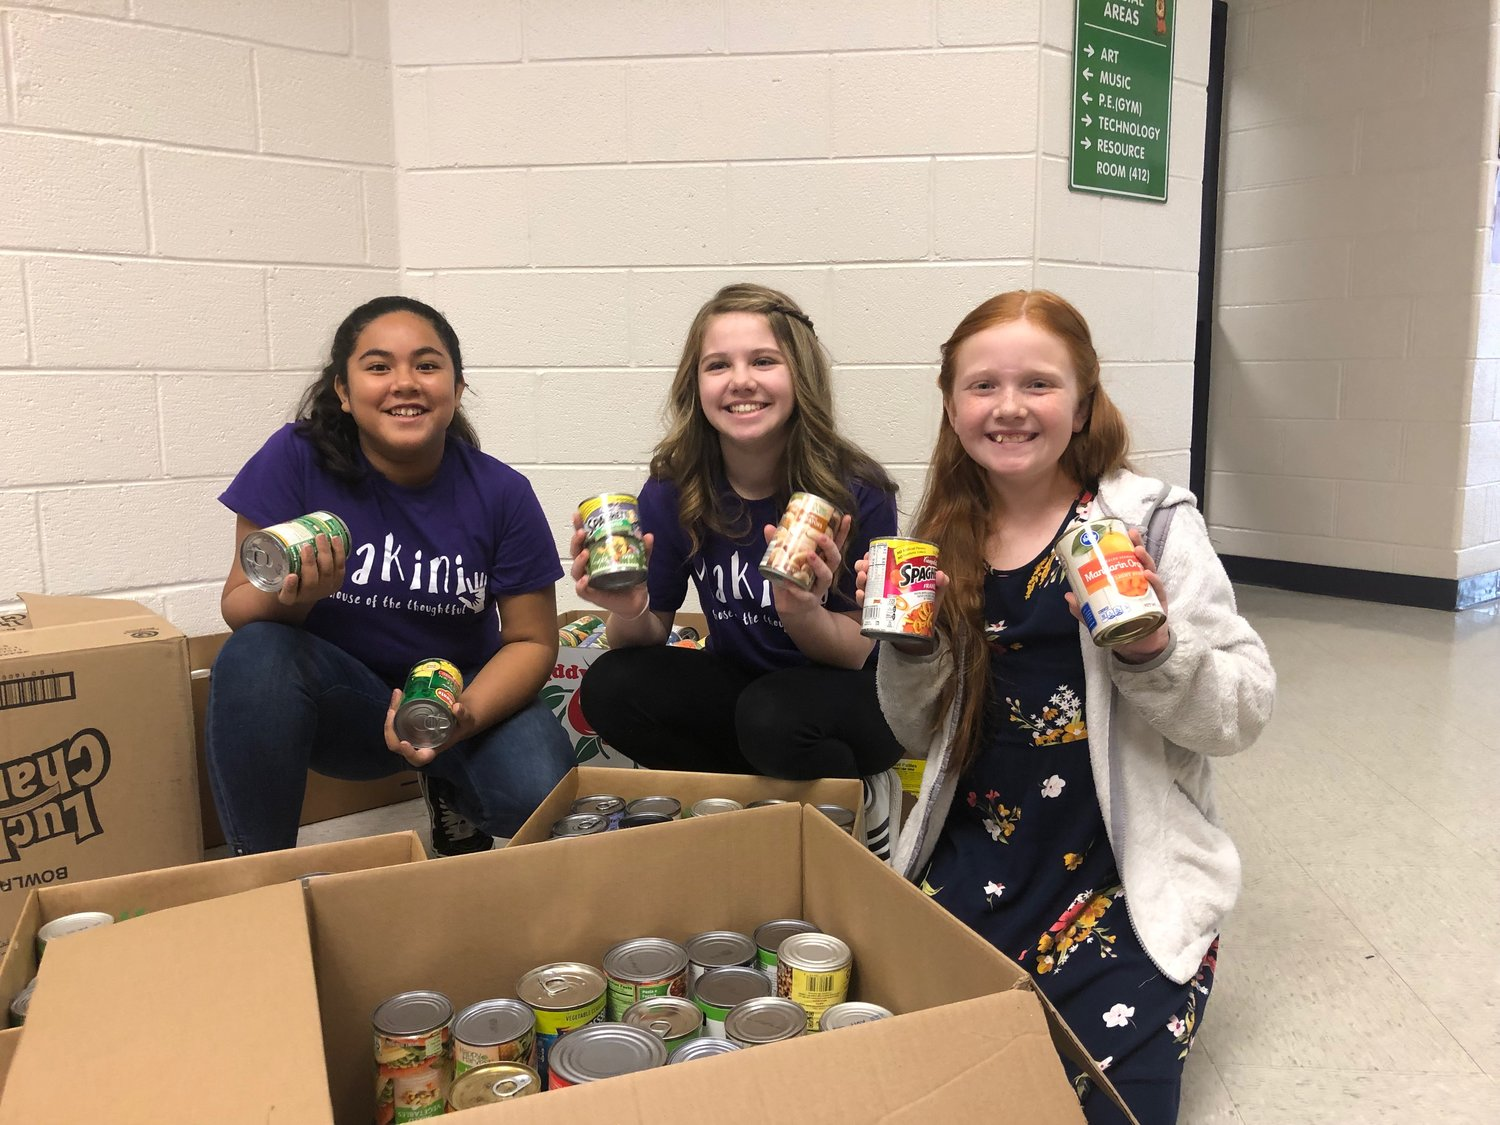 Clear Creek Elementary students, from left, Emely Melendez, Briley Hailey and Amelia Carter fill boxes with canned goods their school collected during a food drive for The Salvation Army and North Bartow Community Services last month.